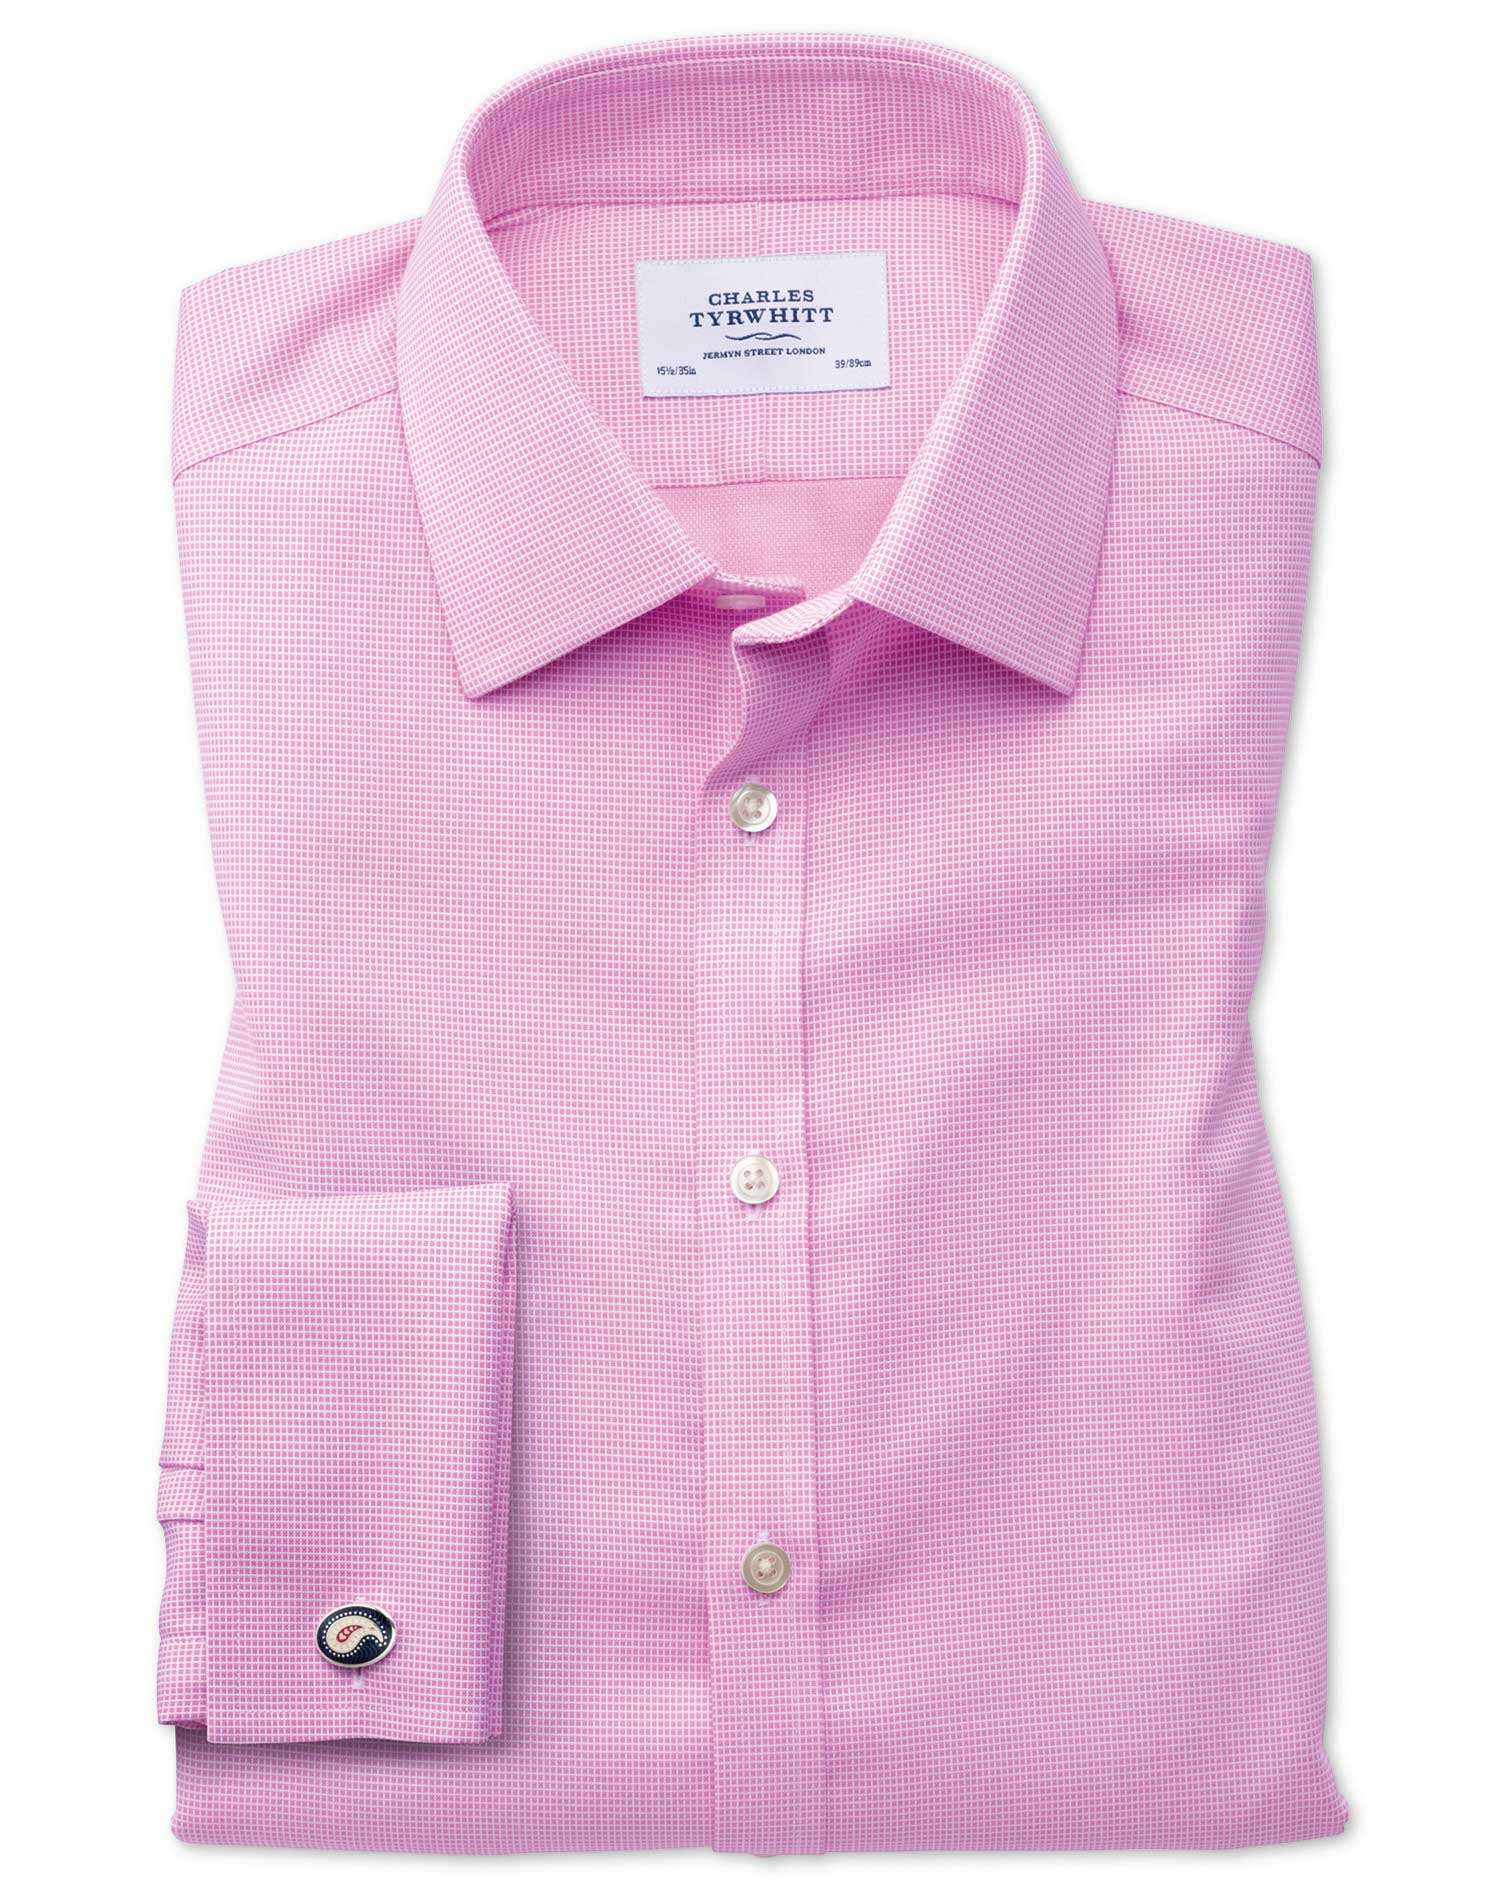 Extra Slim Fit Non-Iron Square Weave Pink Cotton Formal Shirt Single Cuff Size 14.5/32 by Charles Ty